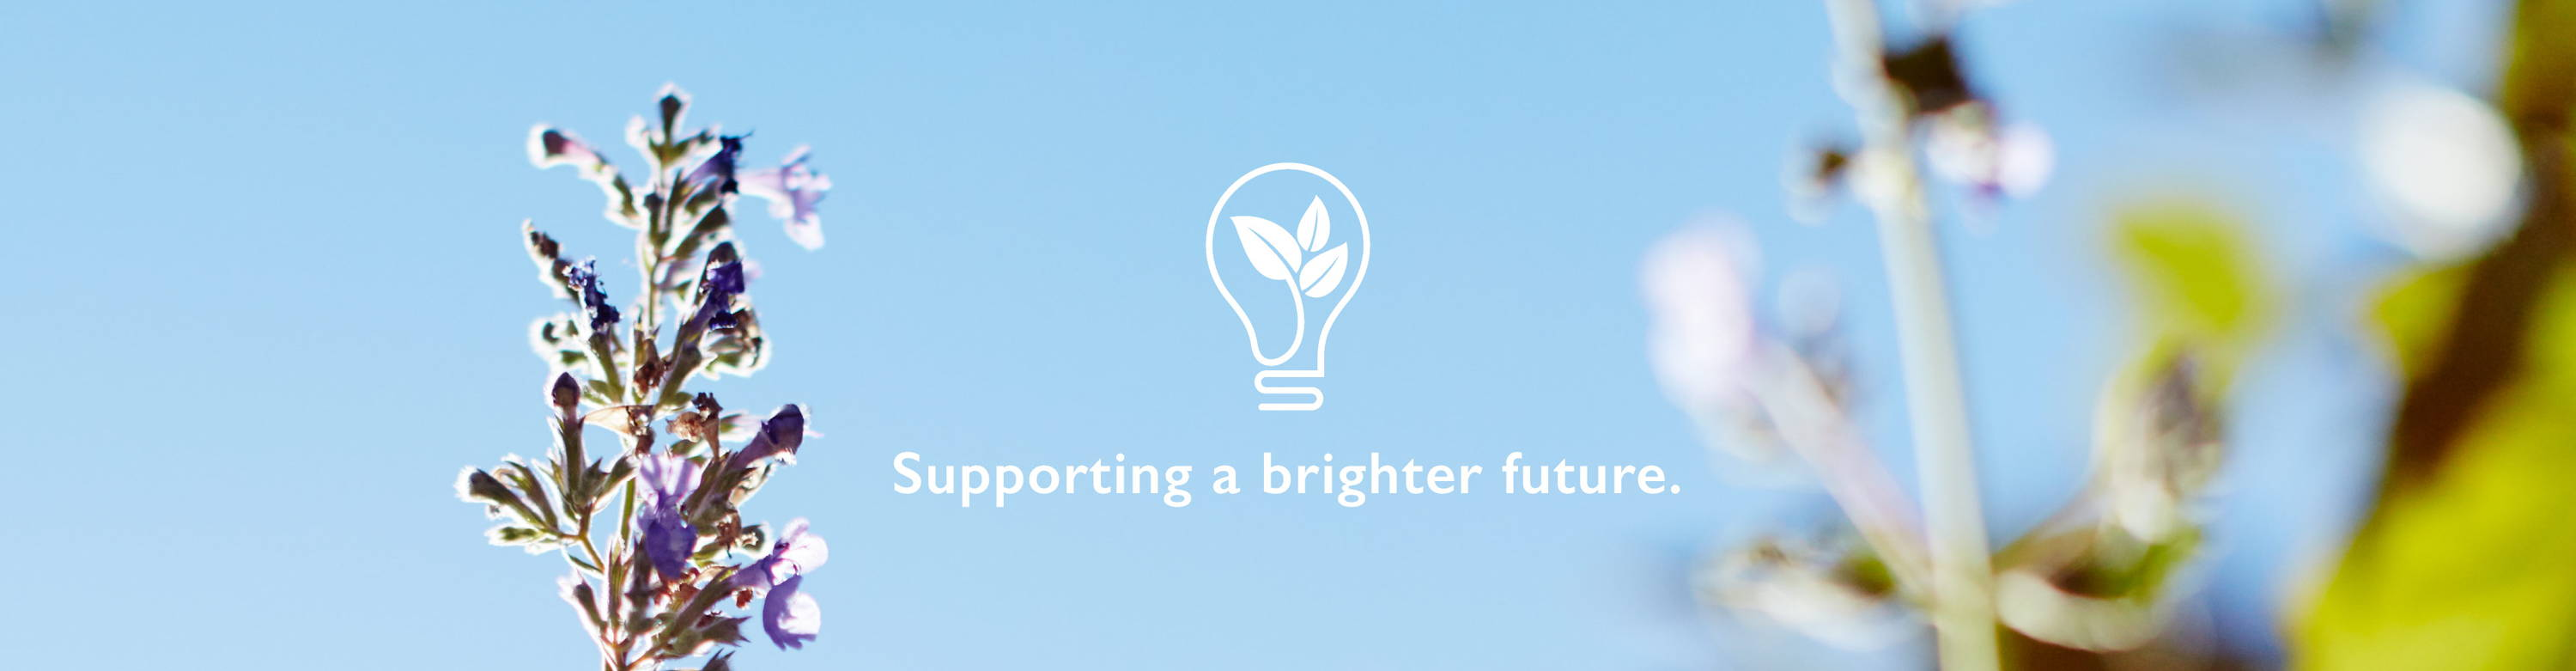 Supporting a brighter future